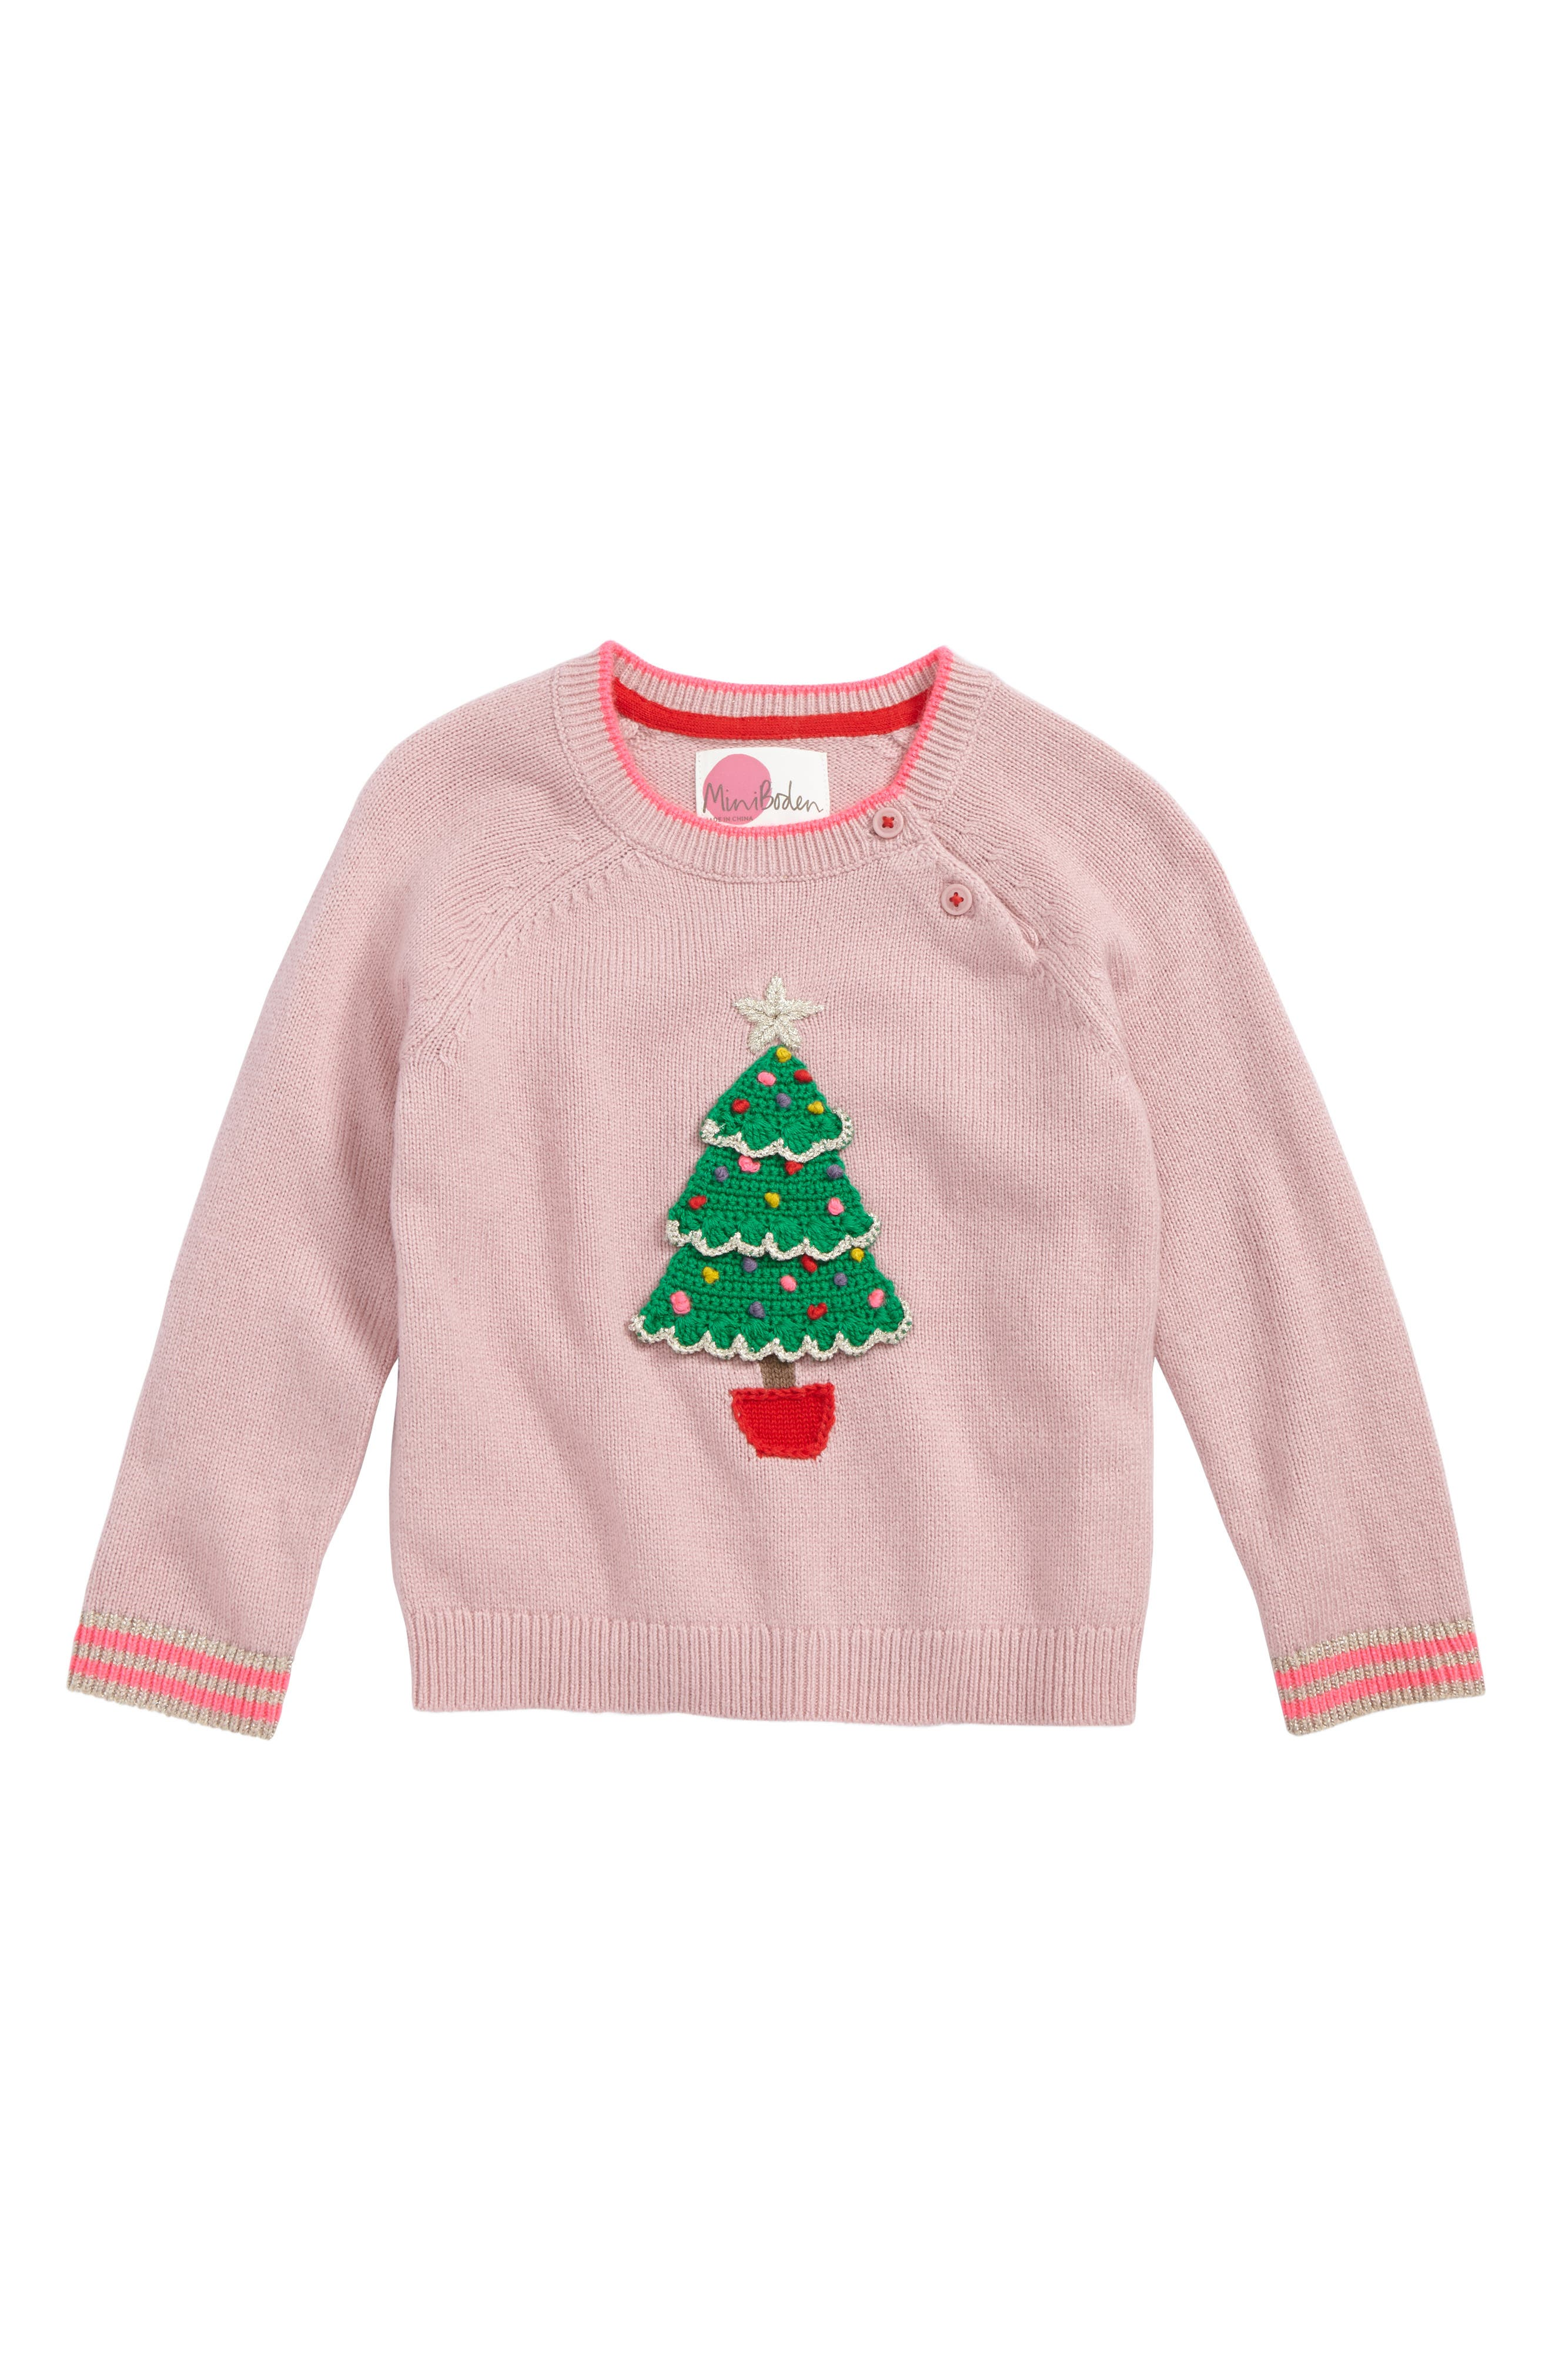 holiday sweater | Nordstrom